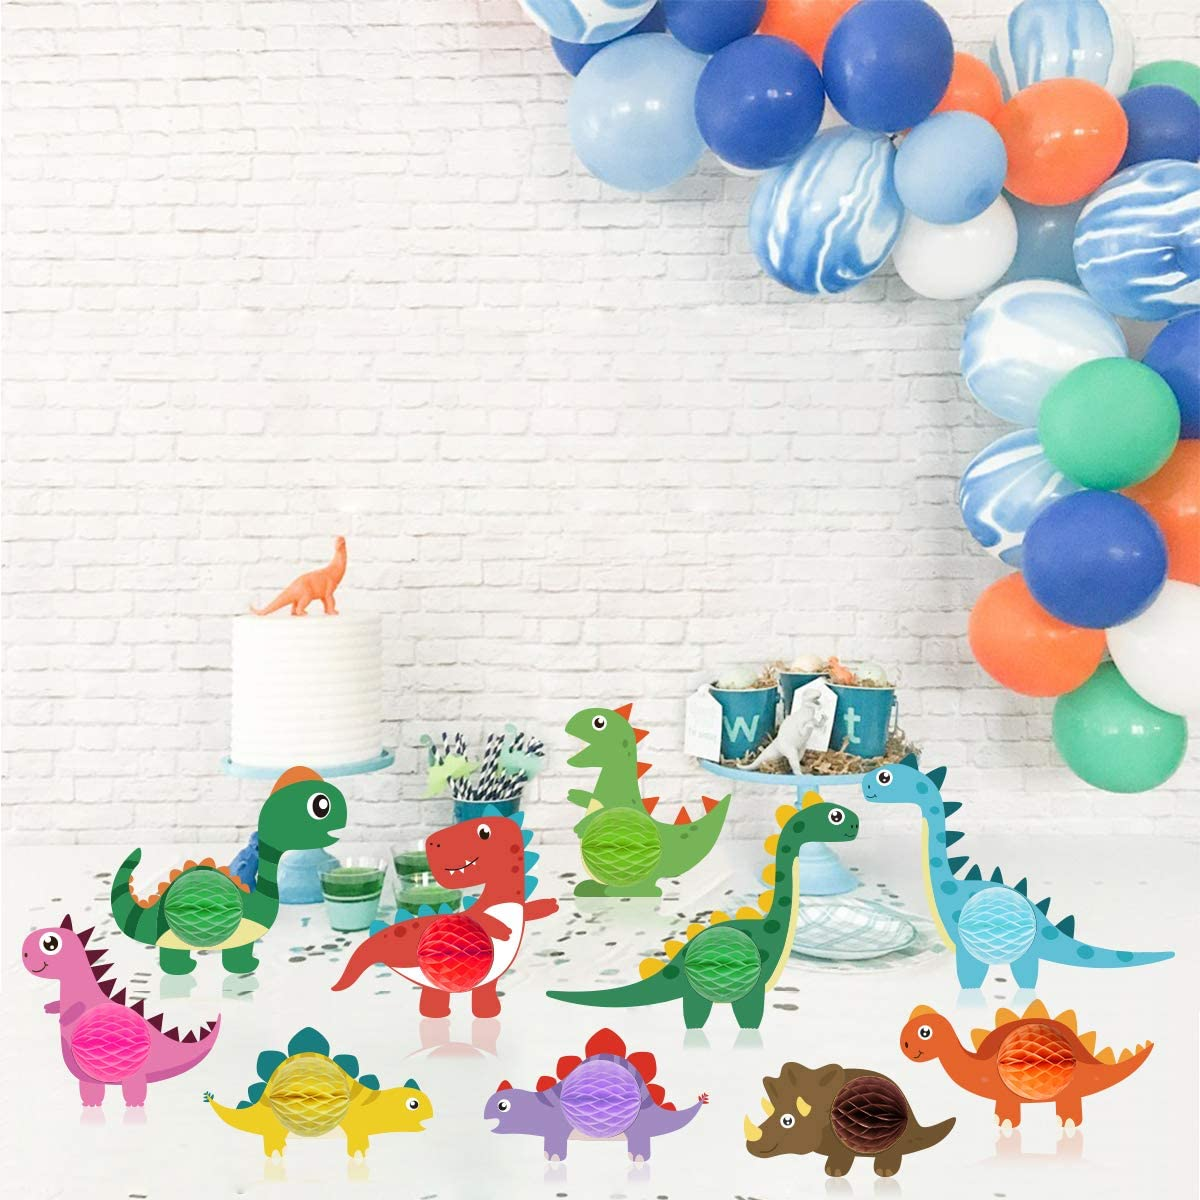 10 Pcs Dinosaur Honeycomb Centerpieces Table Topper for Party Decorations Cute Dinosaur Birthday Party Decorations Supplies For Boys Kids